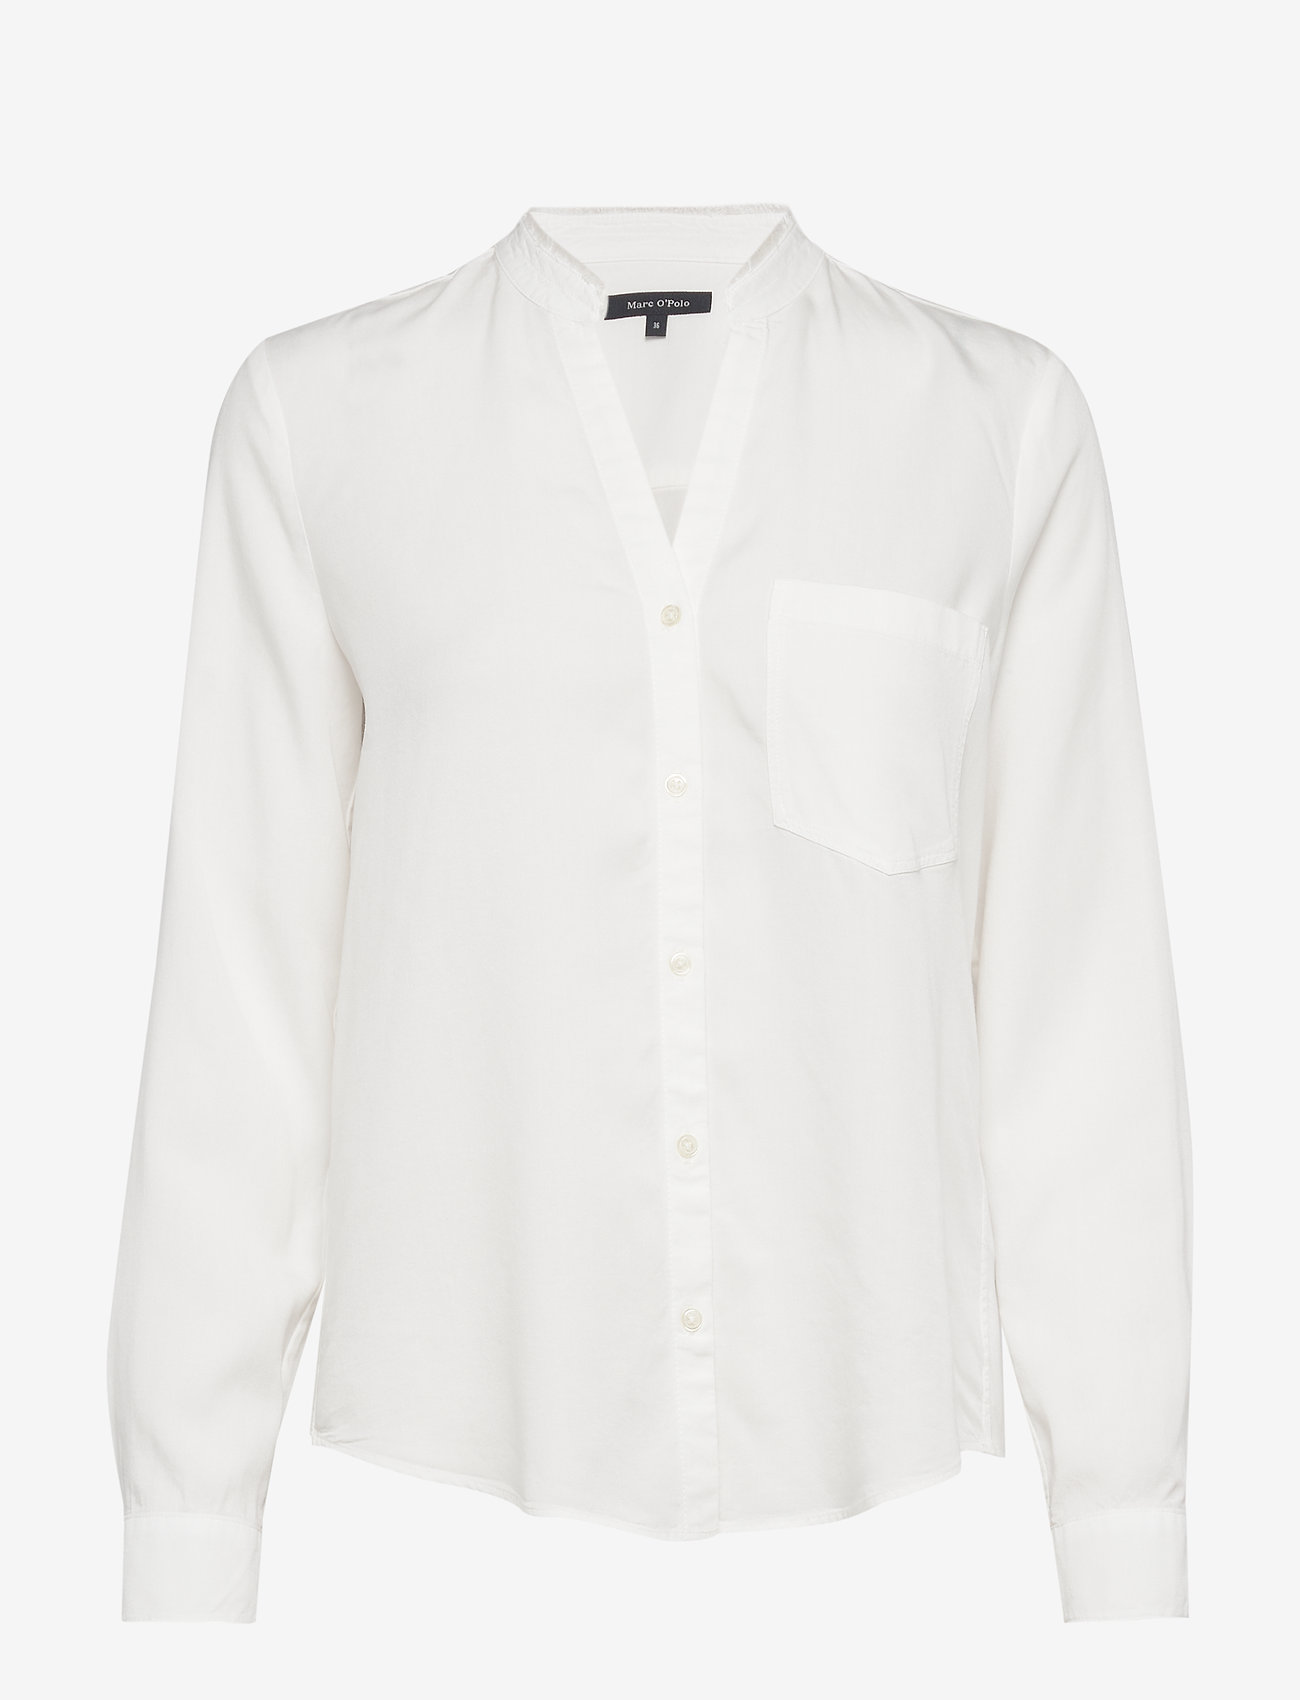 Marc O'Polo - Blouse, round neck with fringes, lo - langærmede skjorter - off white - 0